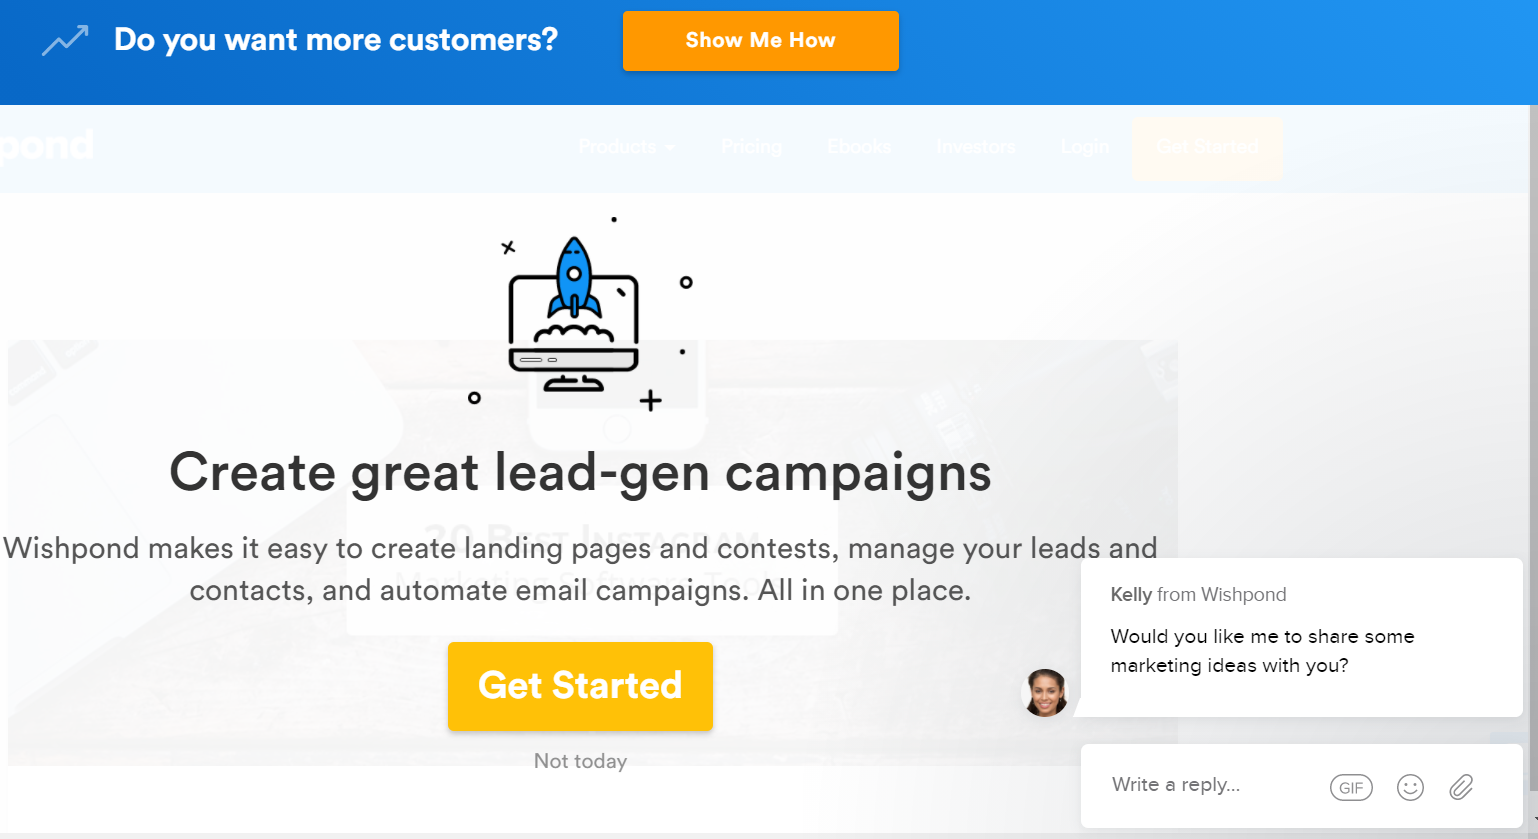 Example of popups and offers on a web page to help generate leads.